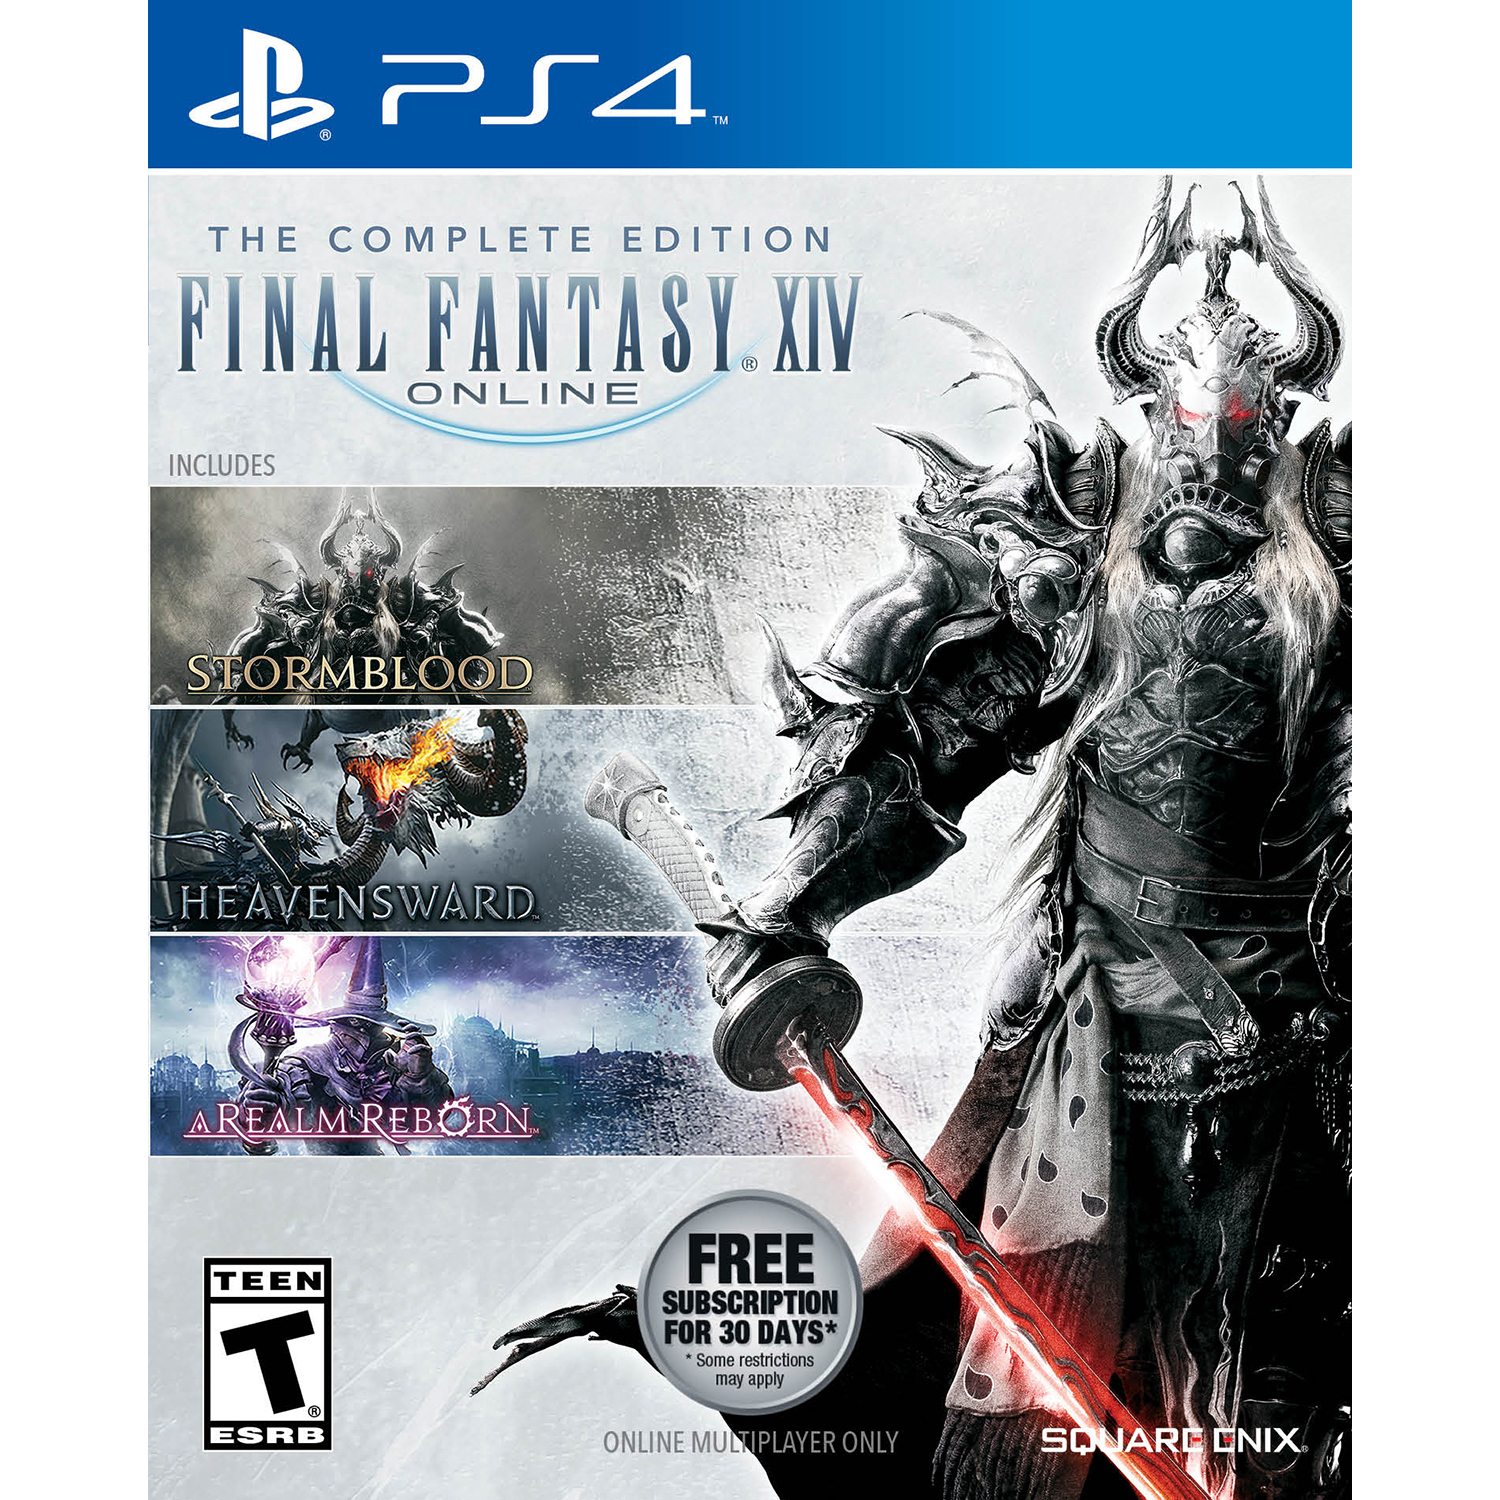 Final Fantasy XIV: The Complete Edition, Square Enix, PlayStation 4, REFURBISHED/PREOWNED